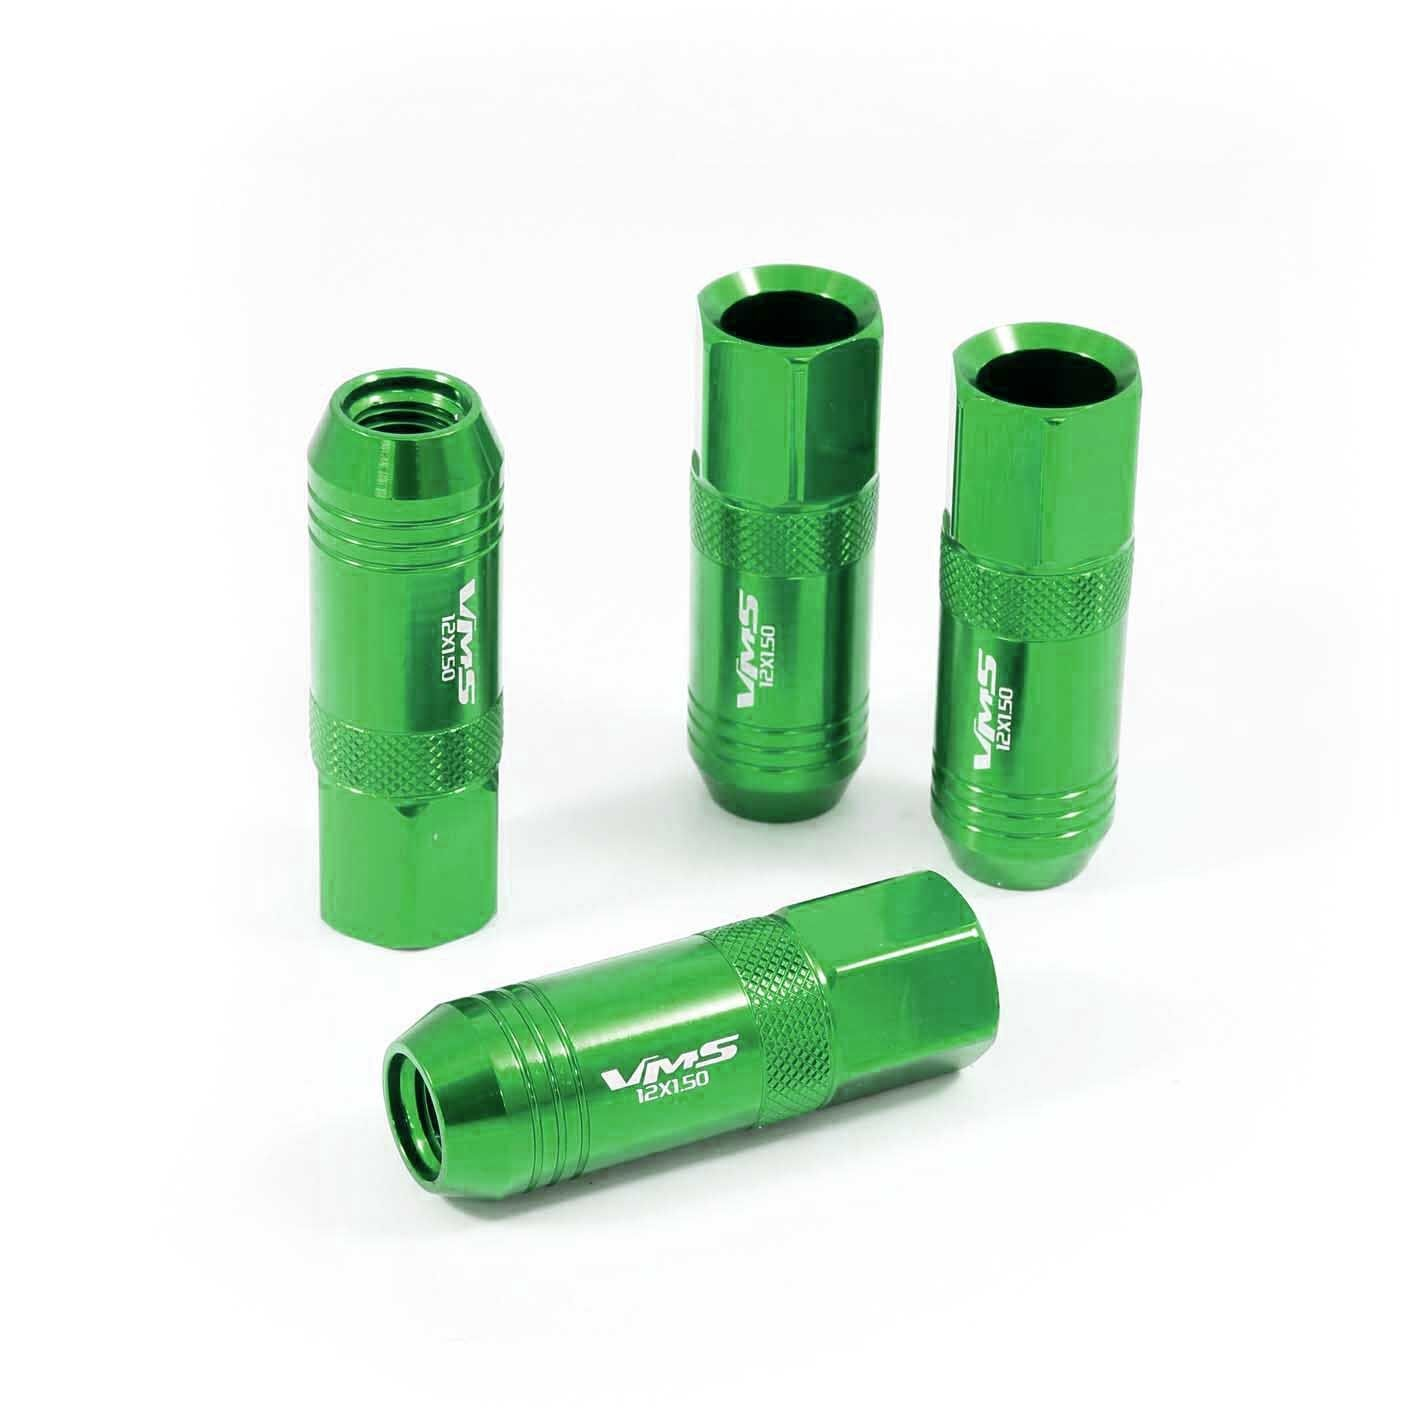 vms 20 green 60mm aluminum extended tuner lug nuts lugs for wheels rims 12x1 5